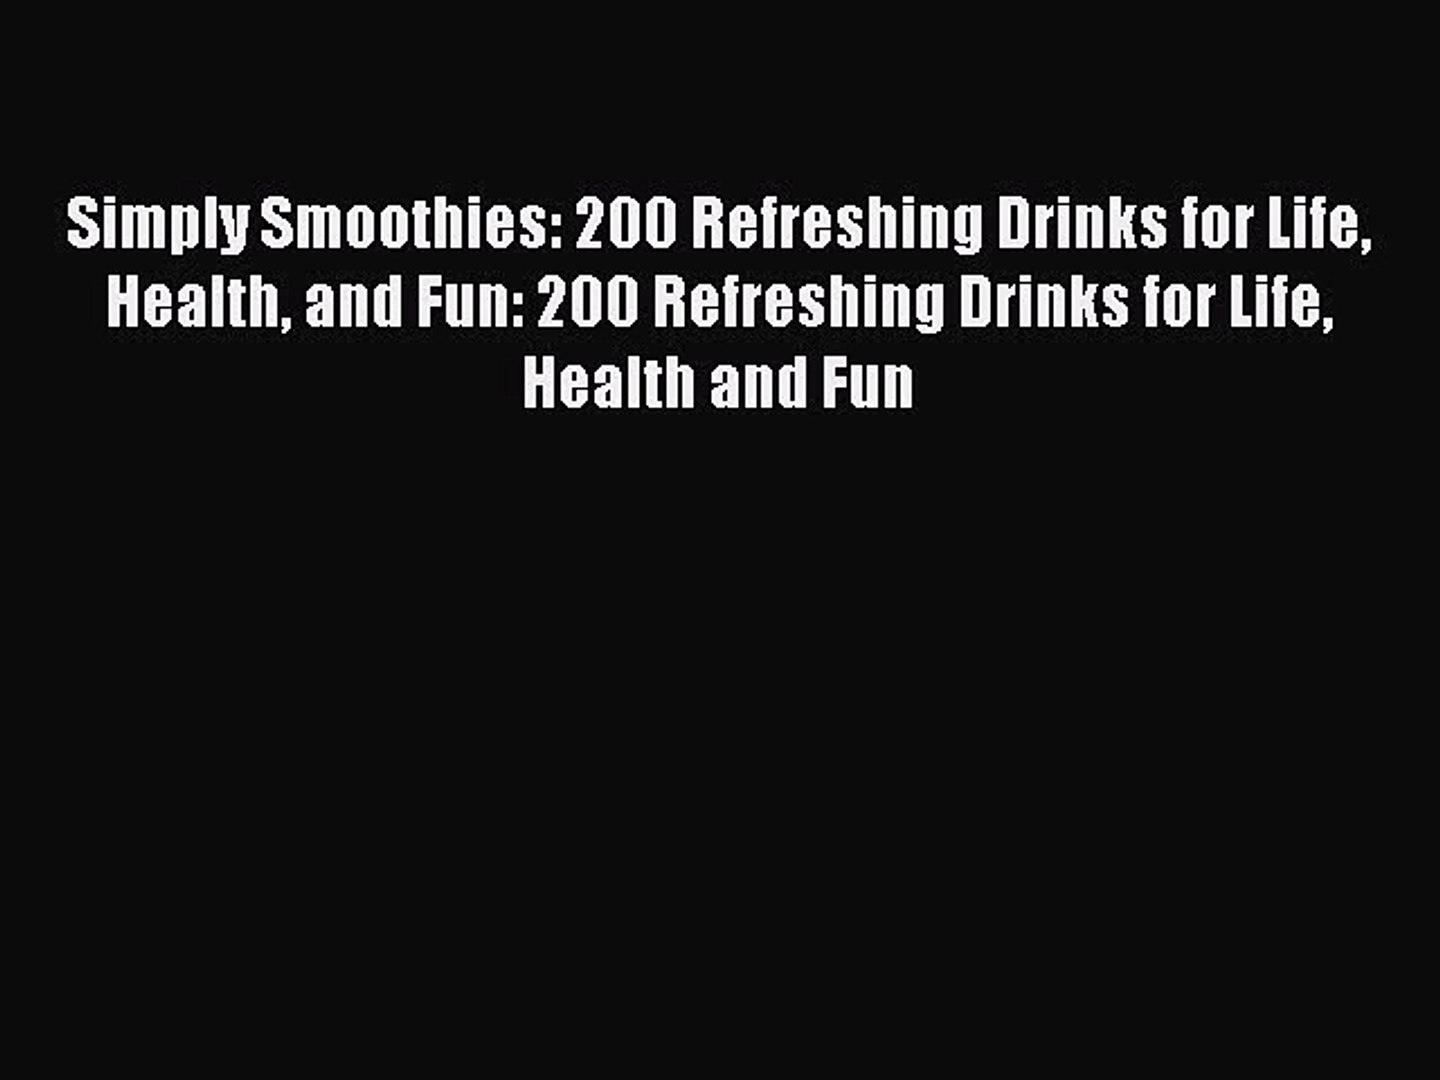 Read Simply Smoothies: 200 Refreshing Drinks for Life Health and Fun: 200 Refreshing Drinks